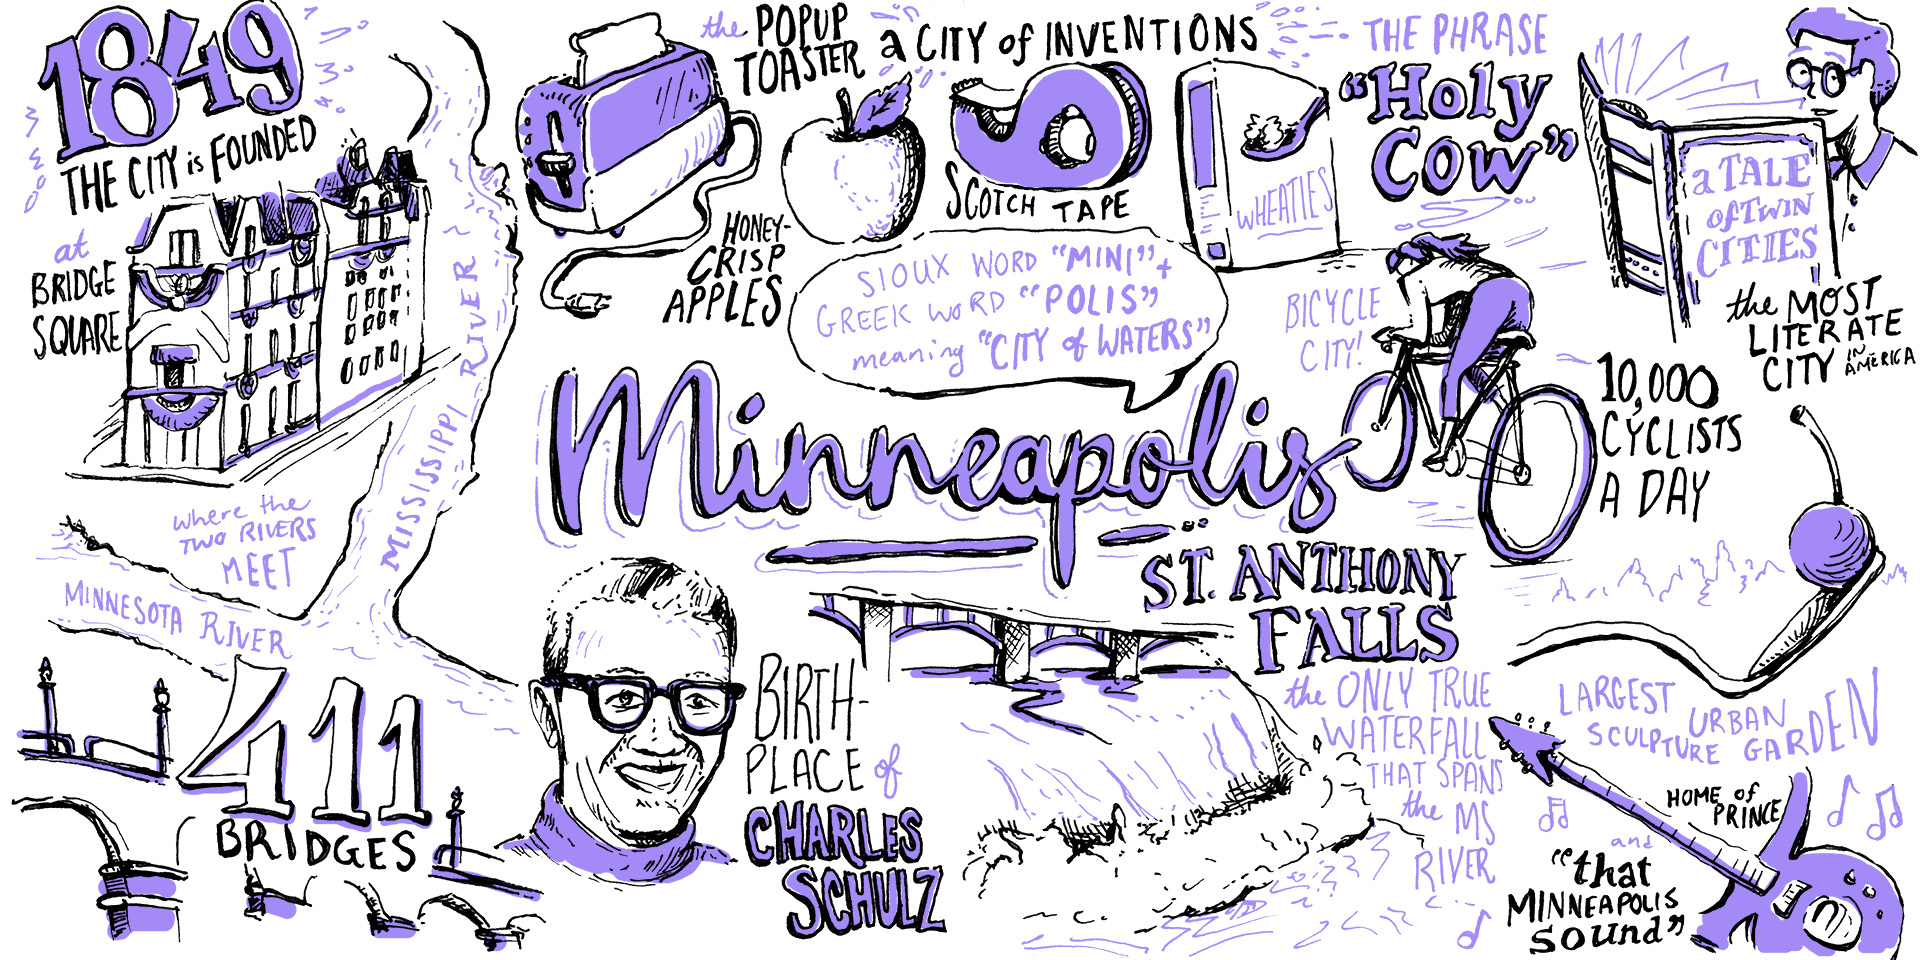 Fun Interesting facts about Minneapolis, hand drawn and illustrated for Neenah Paper at AIGA Design Conference 2017. Shows; 1849 the city is founded at bridge square; 411 bridges; Birthplace of Charles shulz; city of inventions; st. anthony falls; bicycle; sculpture garden; prince.